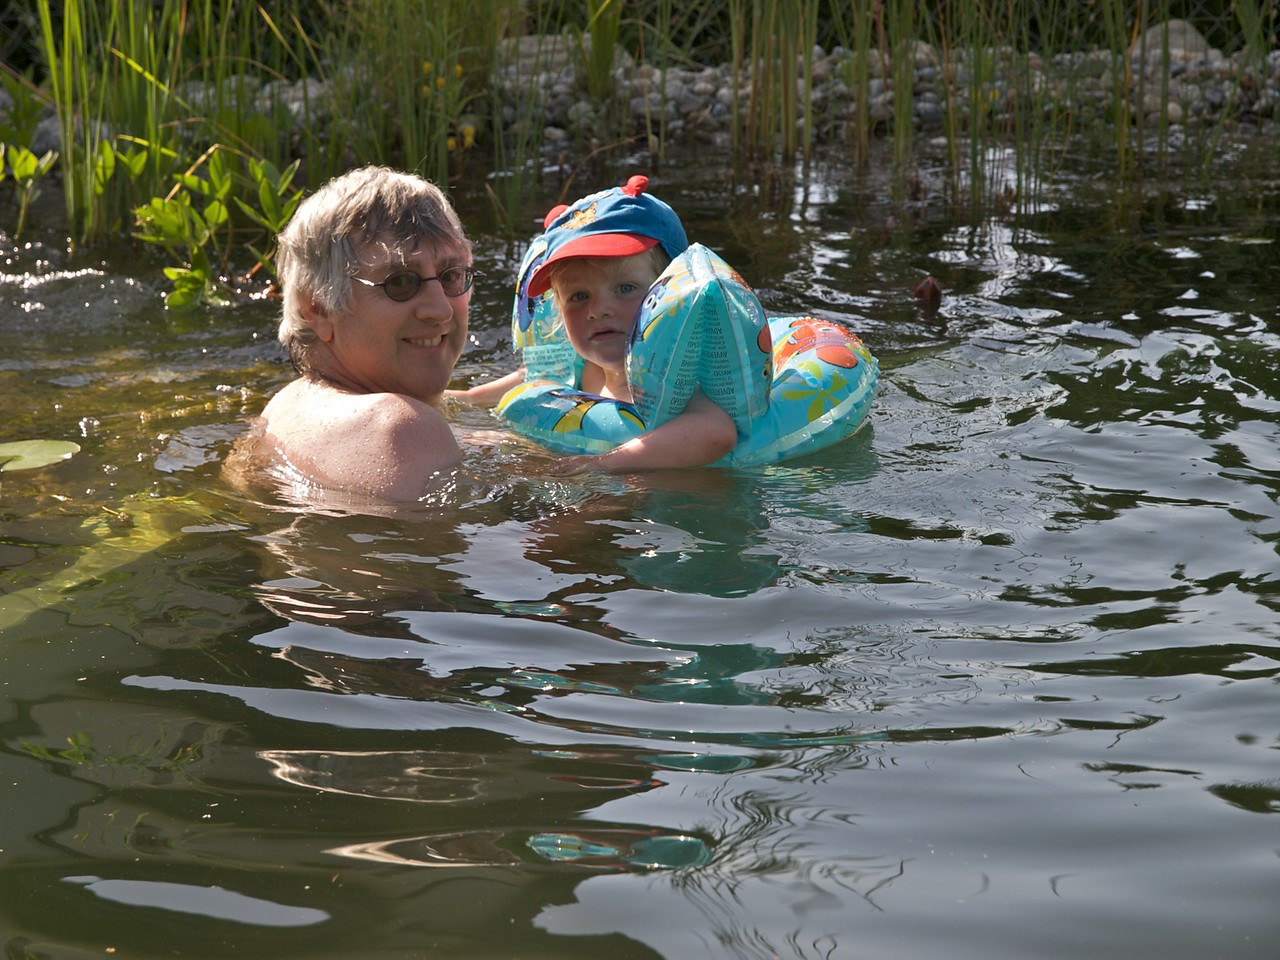 Sunday 20th June 2010 - Although the weather has been cold there have been very warm spells, here is Luc's first time in the pond, He thought it too cold ( the water was 24 degrees) and cried but once he got over the shock we think he actually liked it.